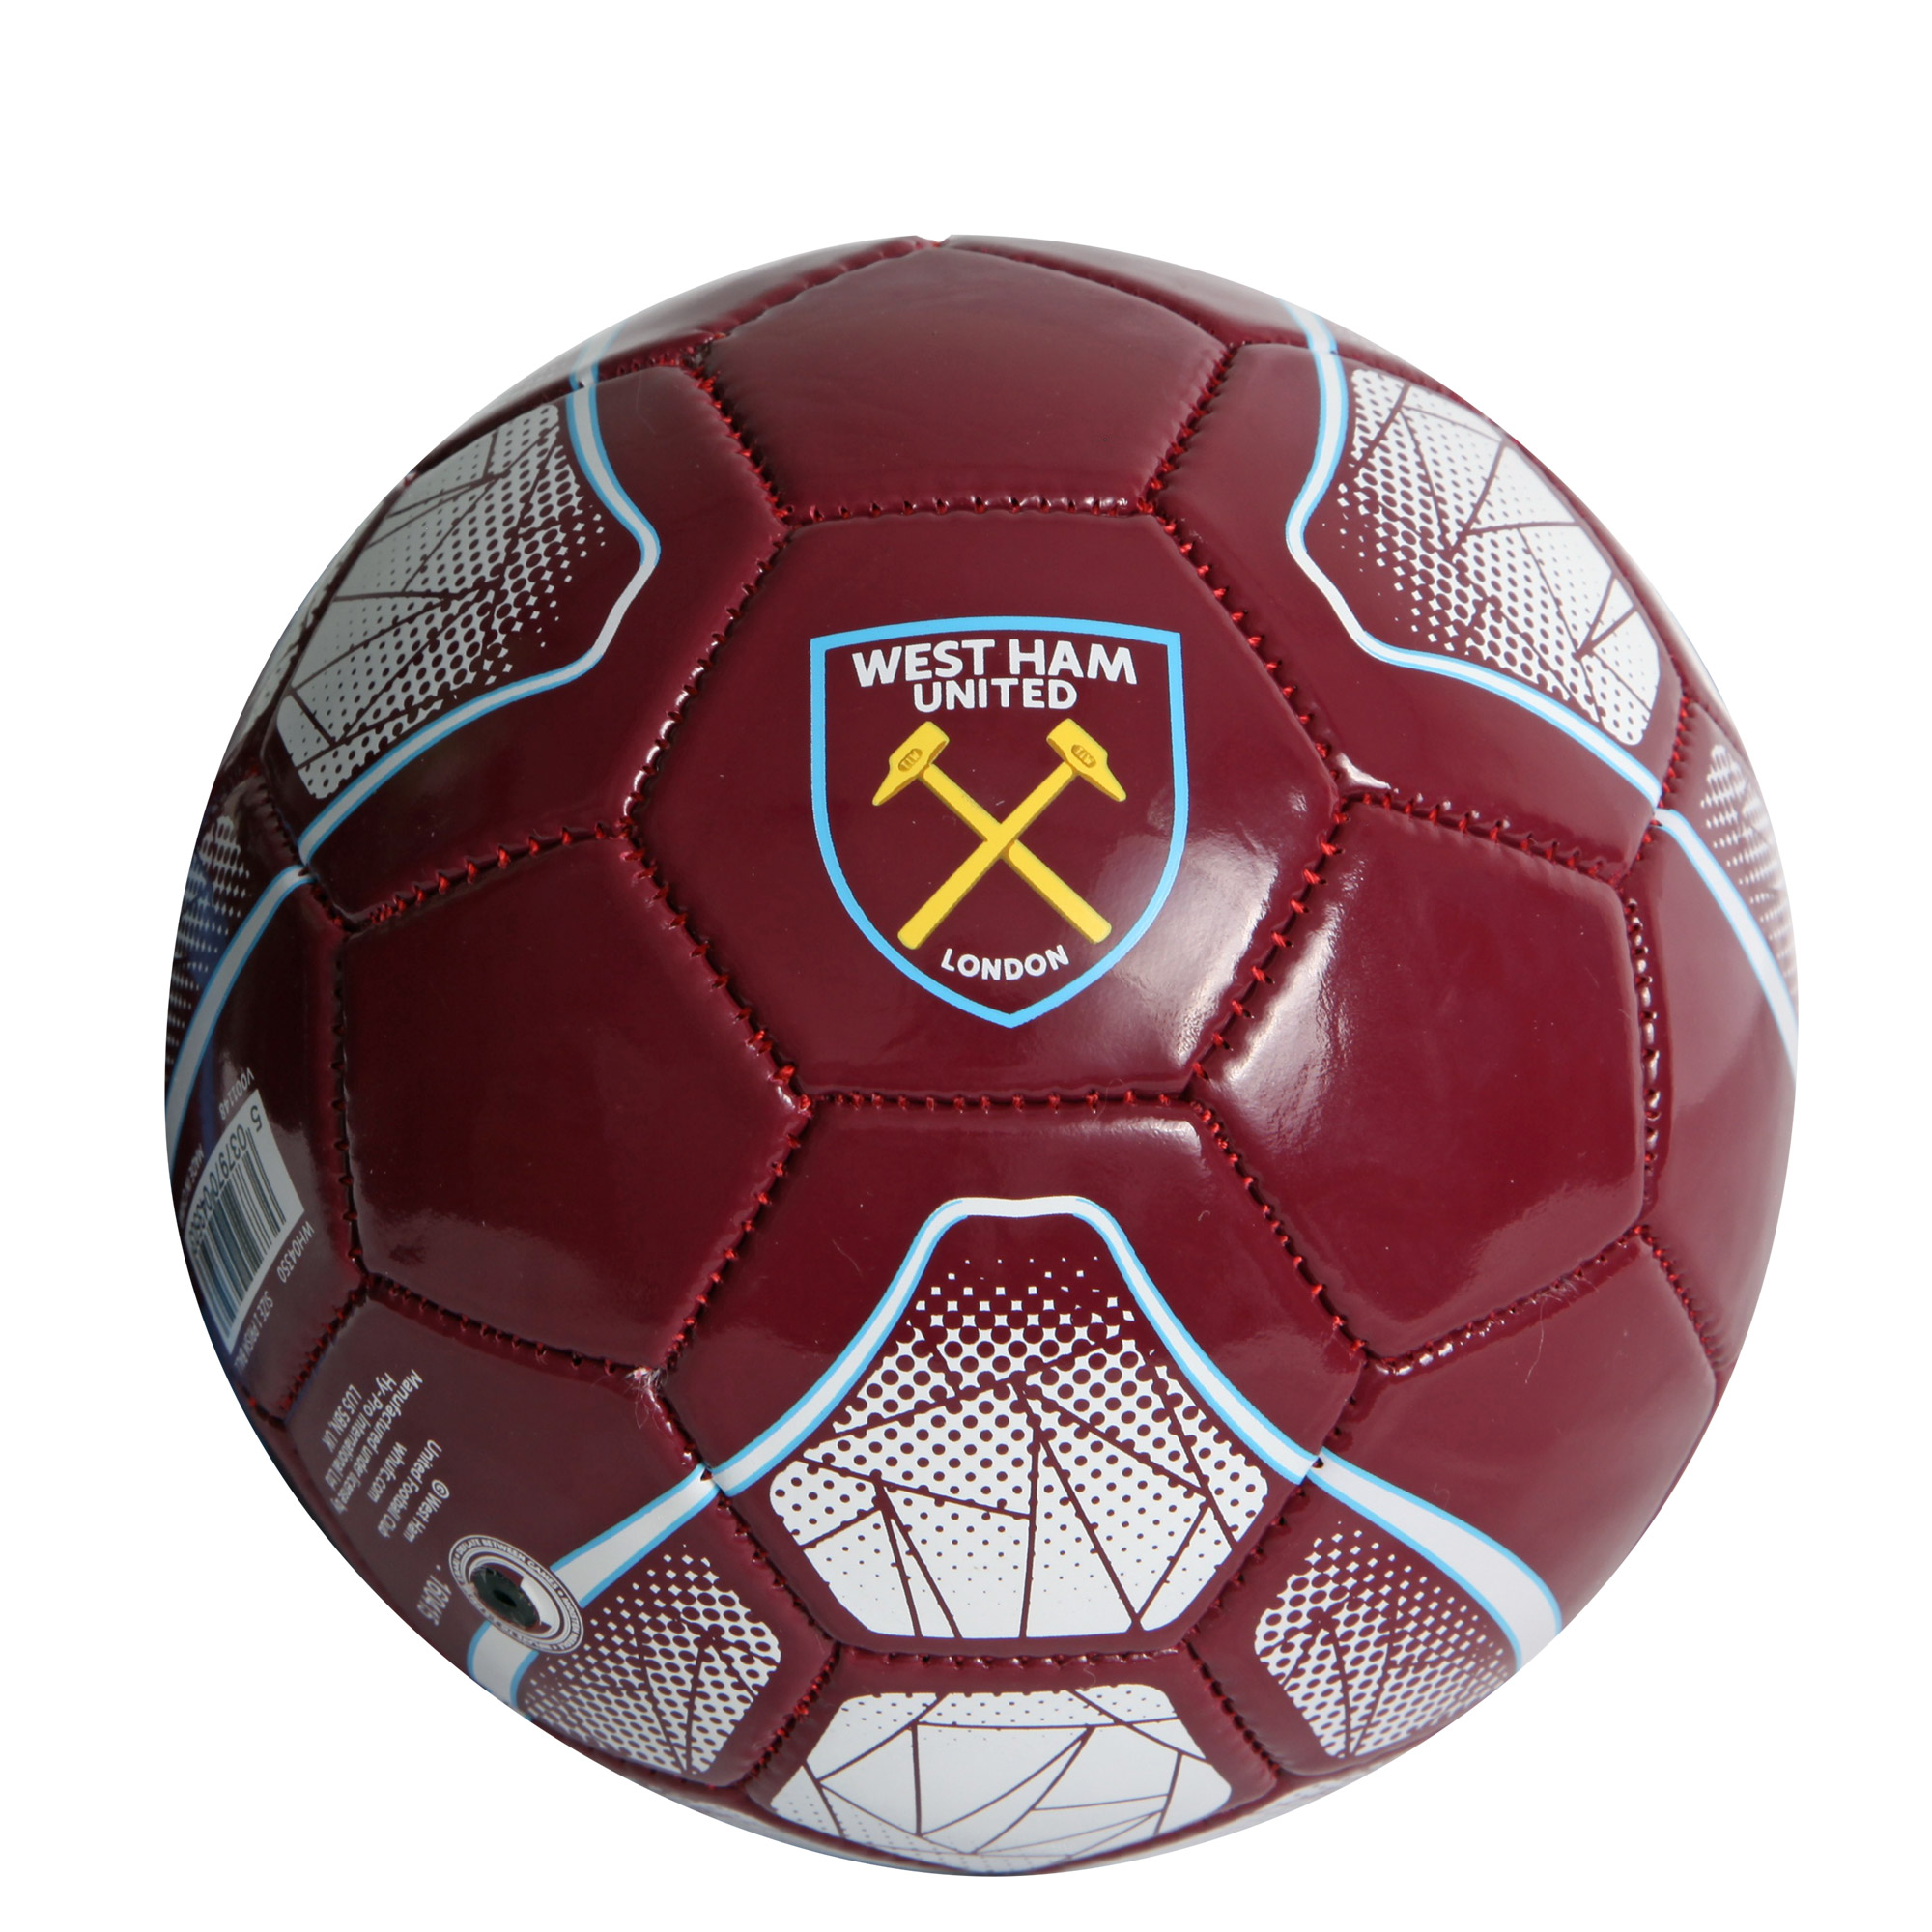 CLARET SIZE 1 FOOTBALL